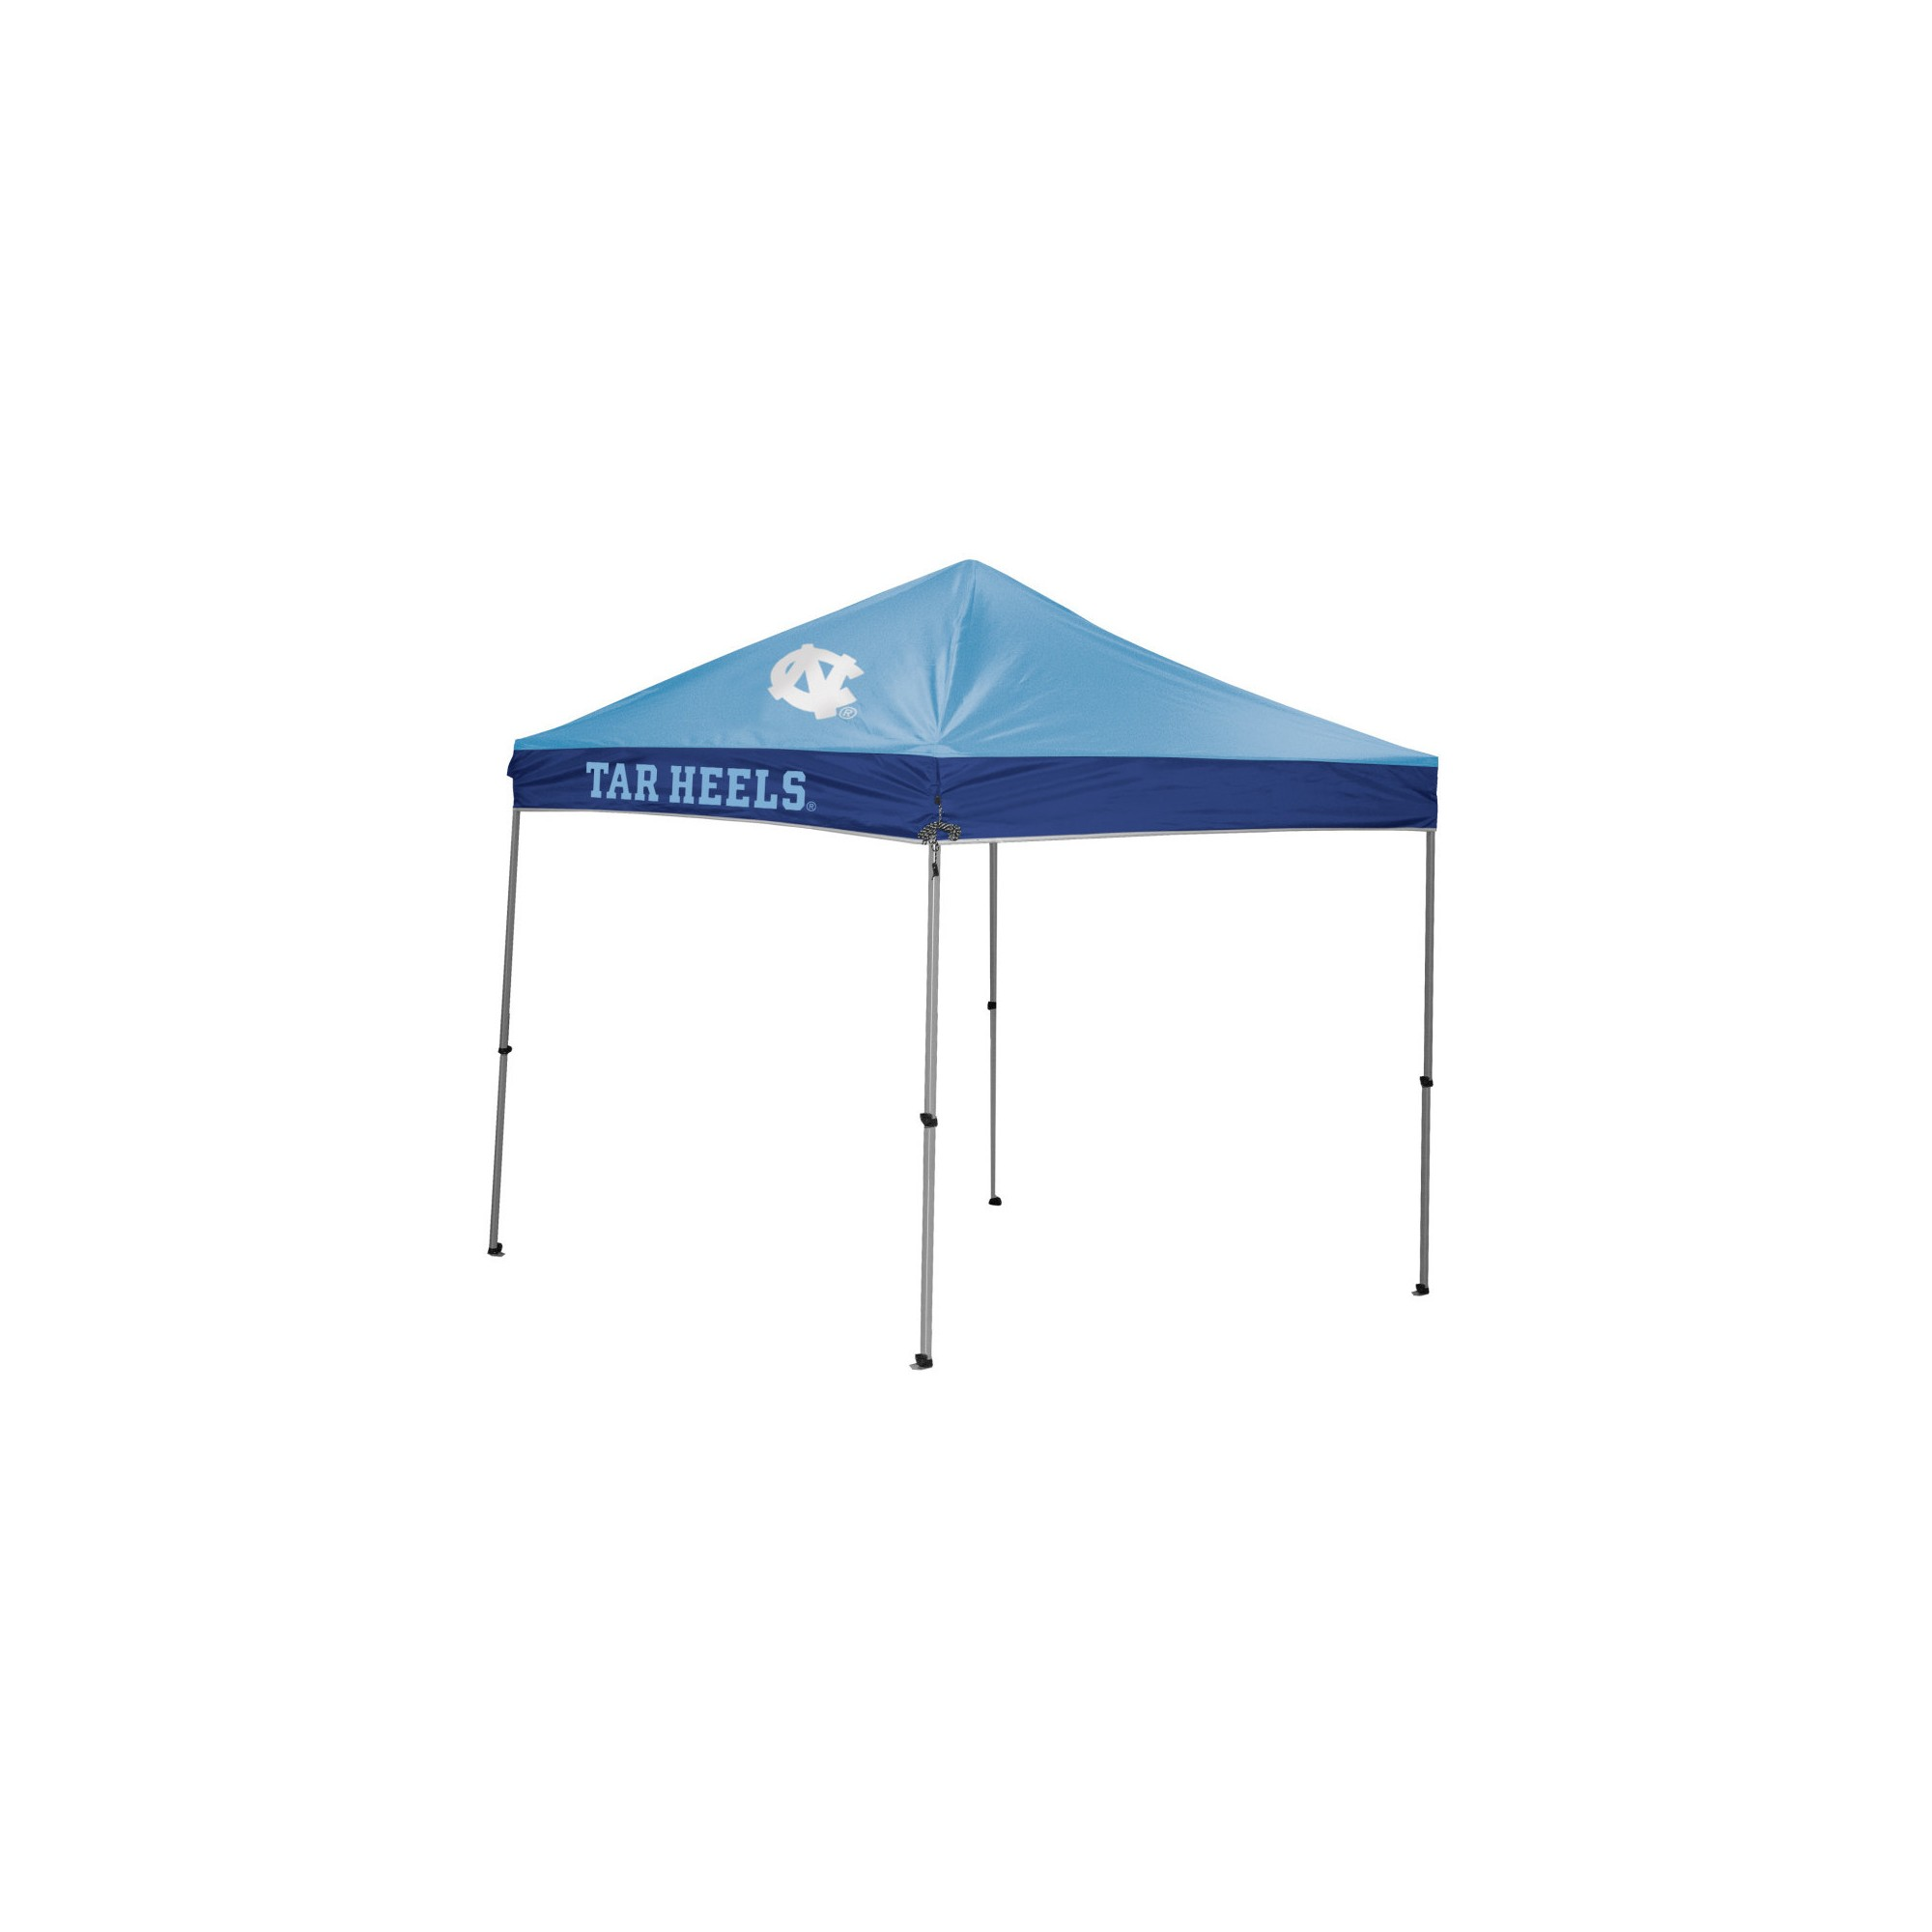 NCAA Rawlings 9u0027x9u0027 Pop Up Canopy Tent North Carolina Tar Heels  sc 1 st  Pinterest & NCAA Rawlings 9u0027x9u0027 Pop Up Canopy Tent North Carolina Tar Heels ...